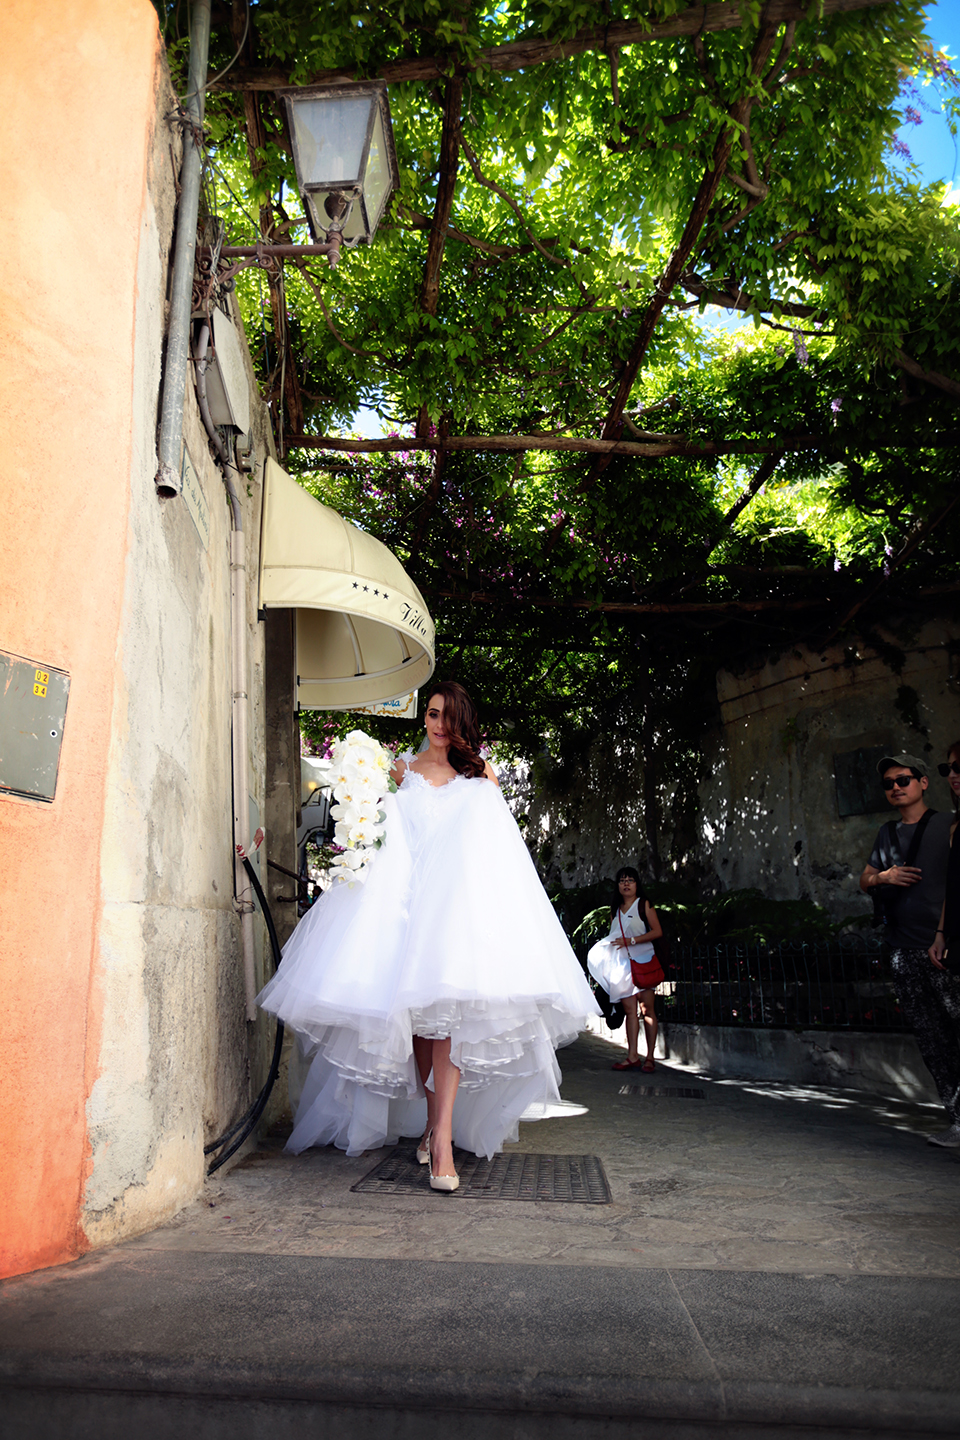 positano-weddin-photographers-italy-wedding-photographers-destination-wedding-photographers-estilo-best-wedding-photographers-in-the-world-casper-bosman-wedding-gown-wedding-style-stylish-modern-wedding-photography-031.jpg